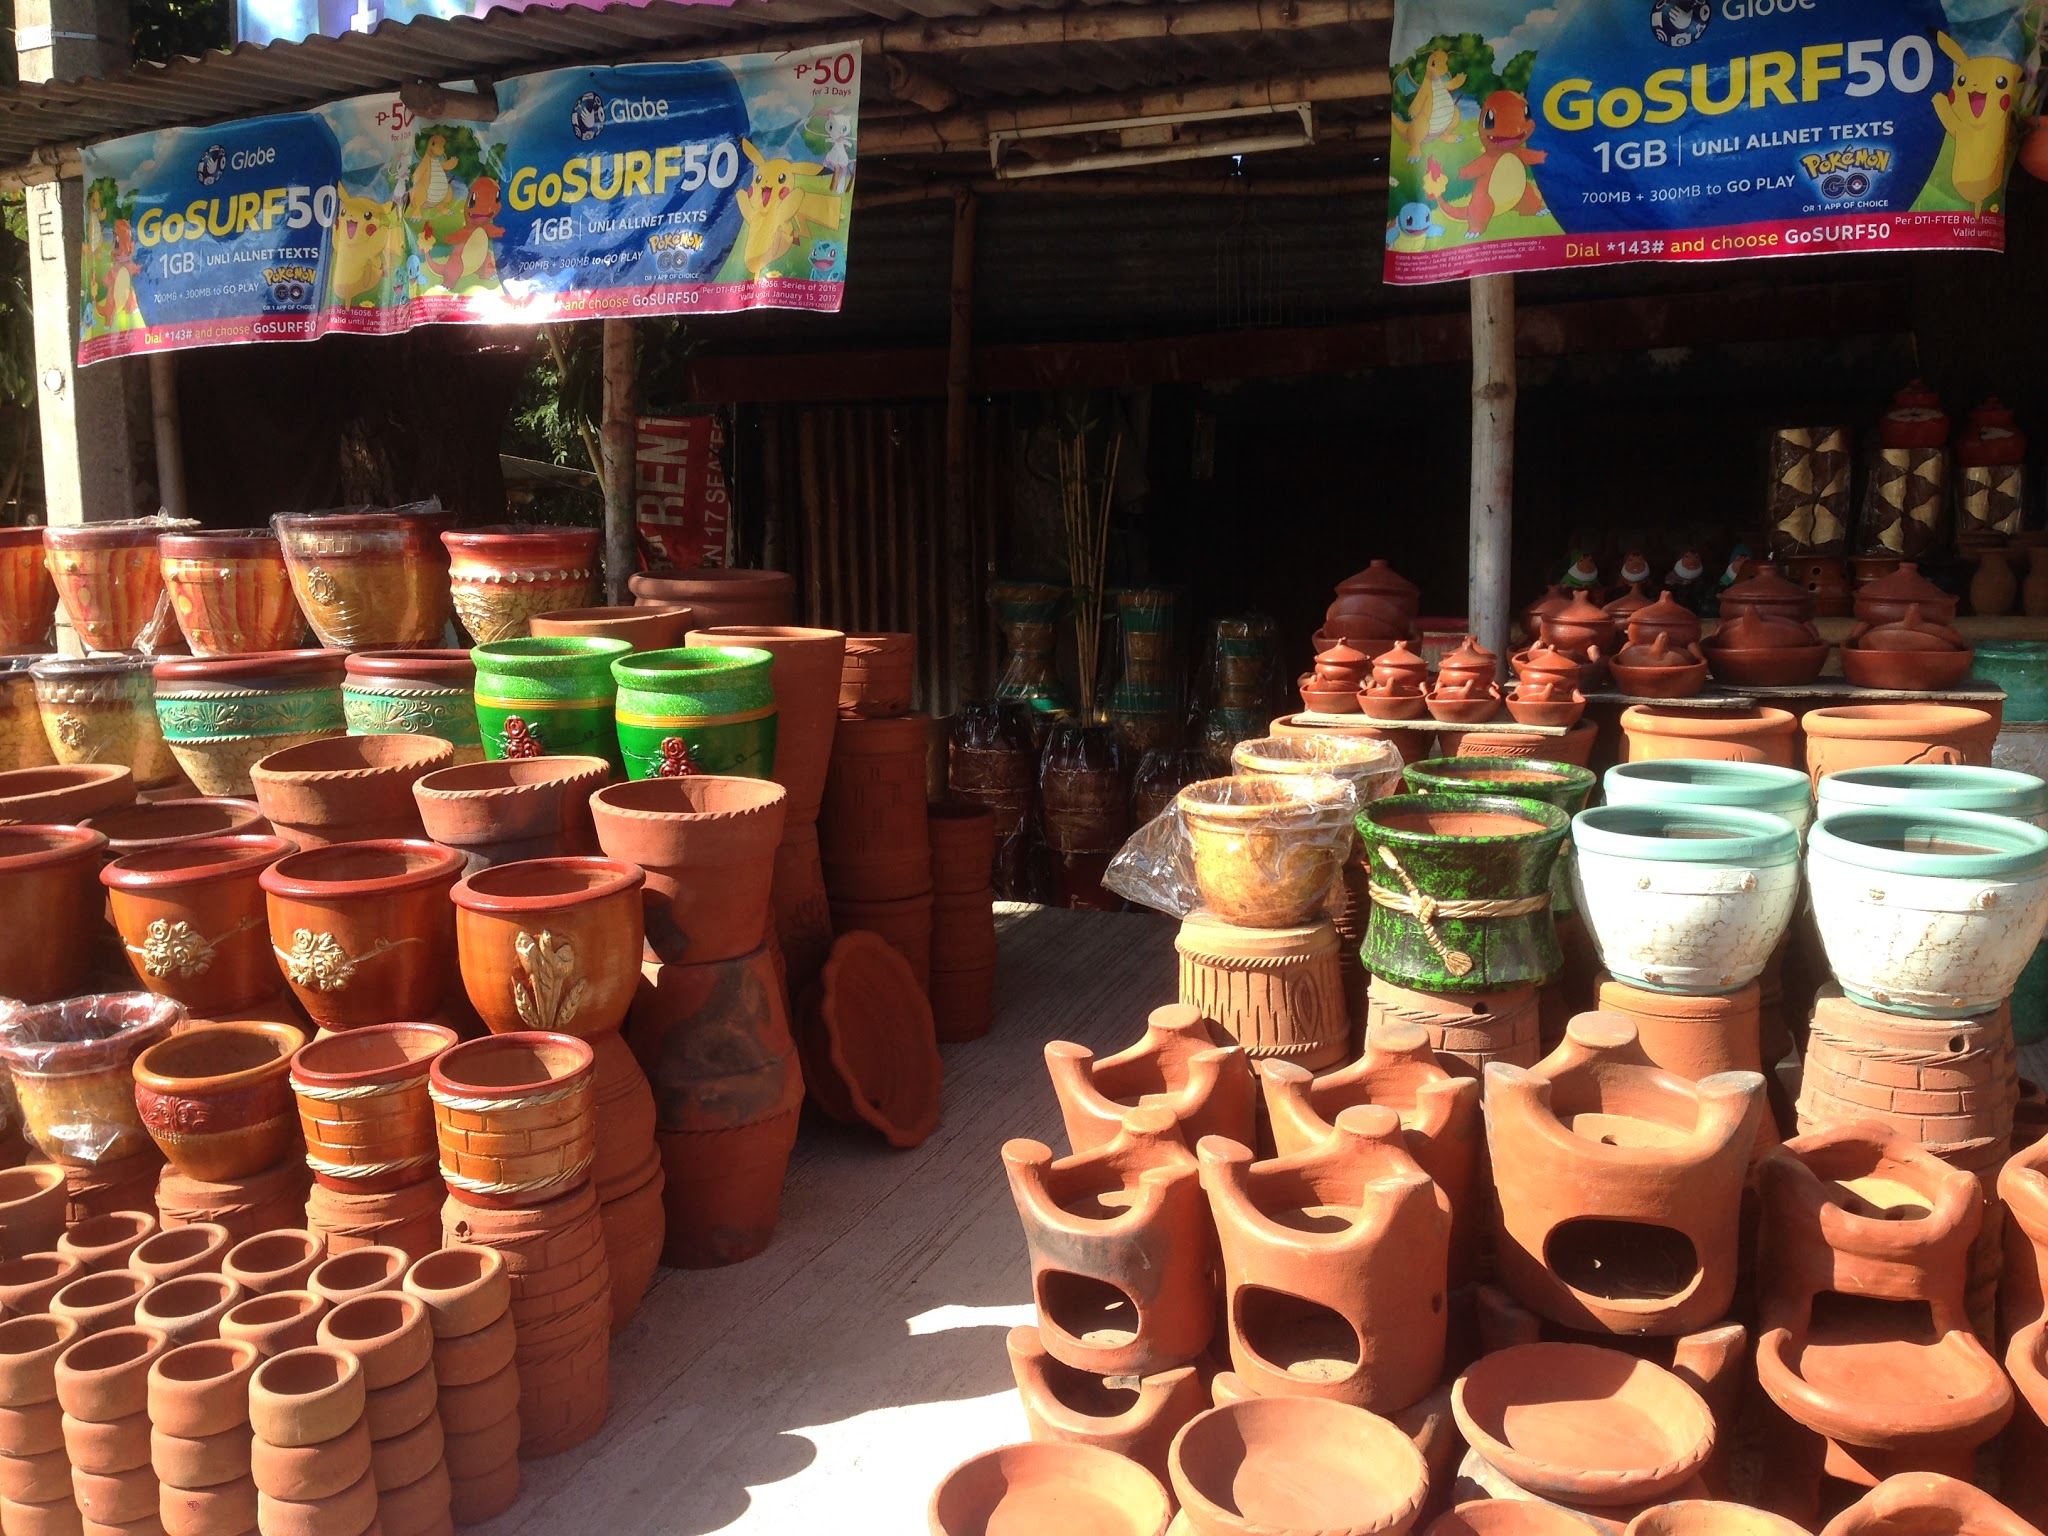 One of the stalls selling San Juan-made pots